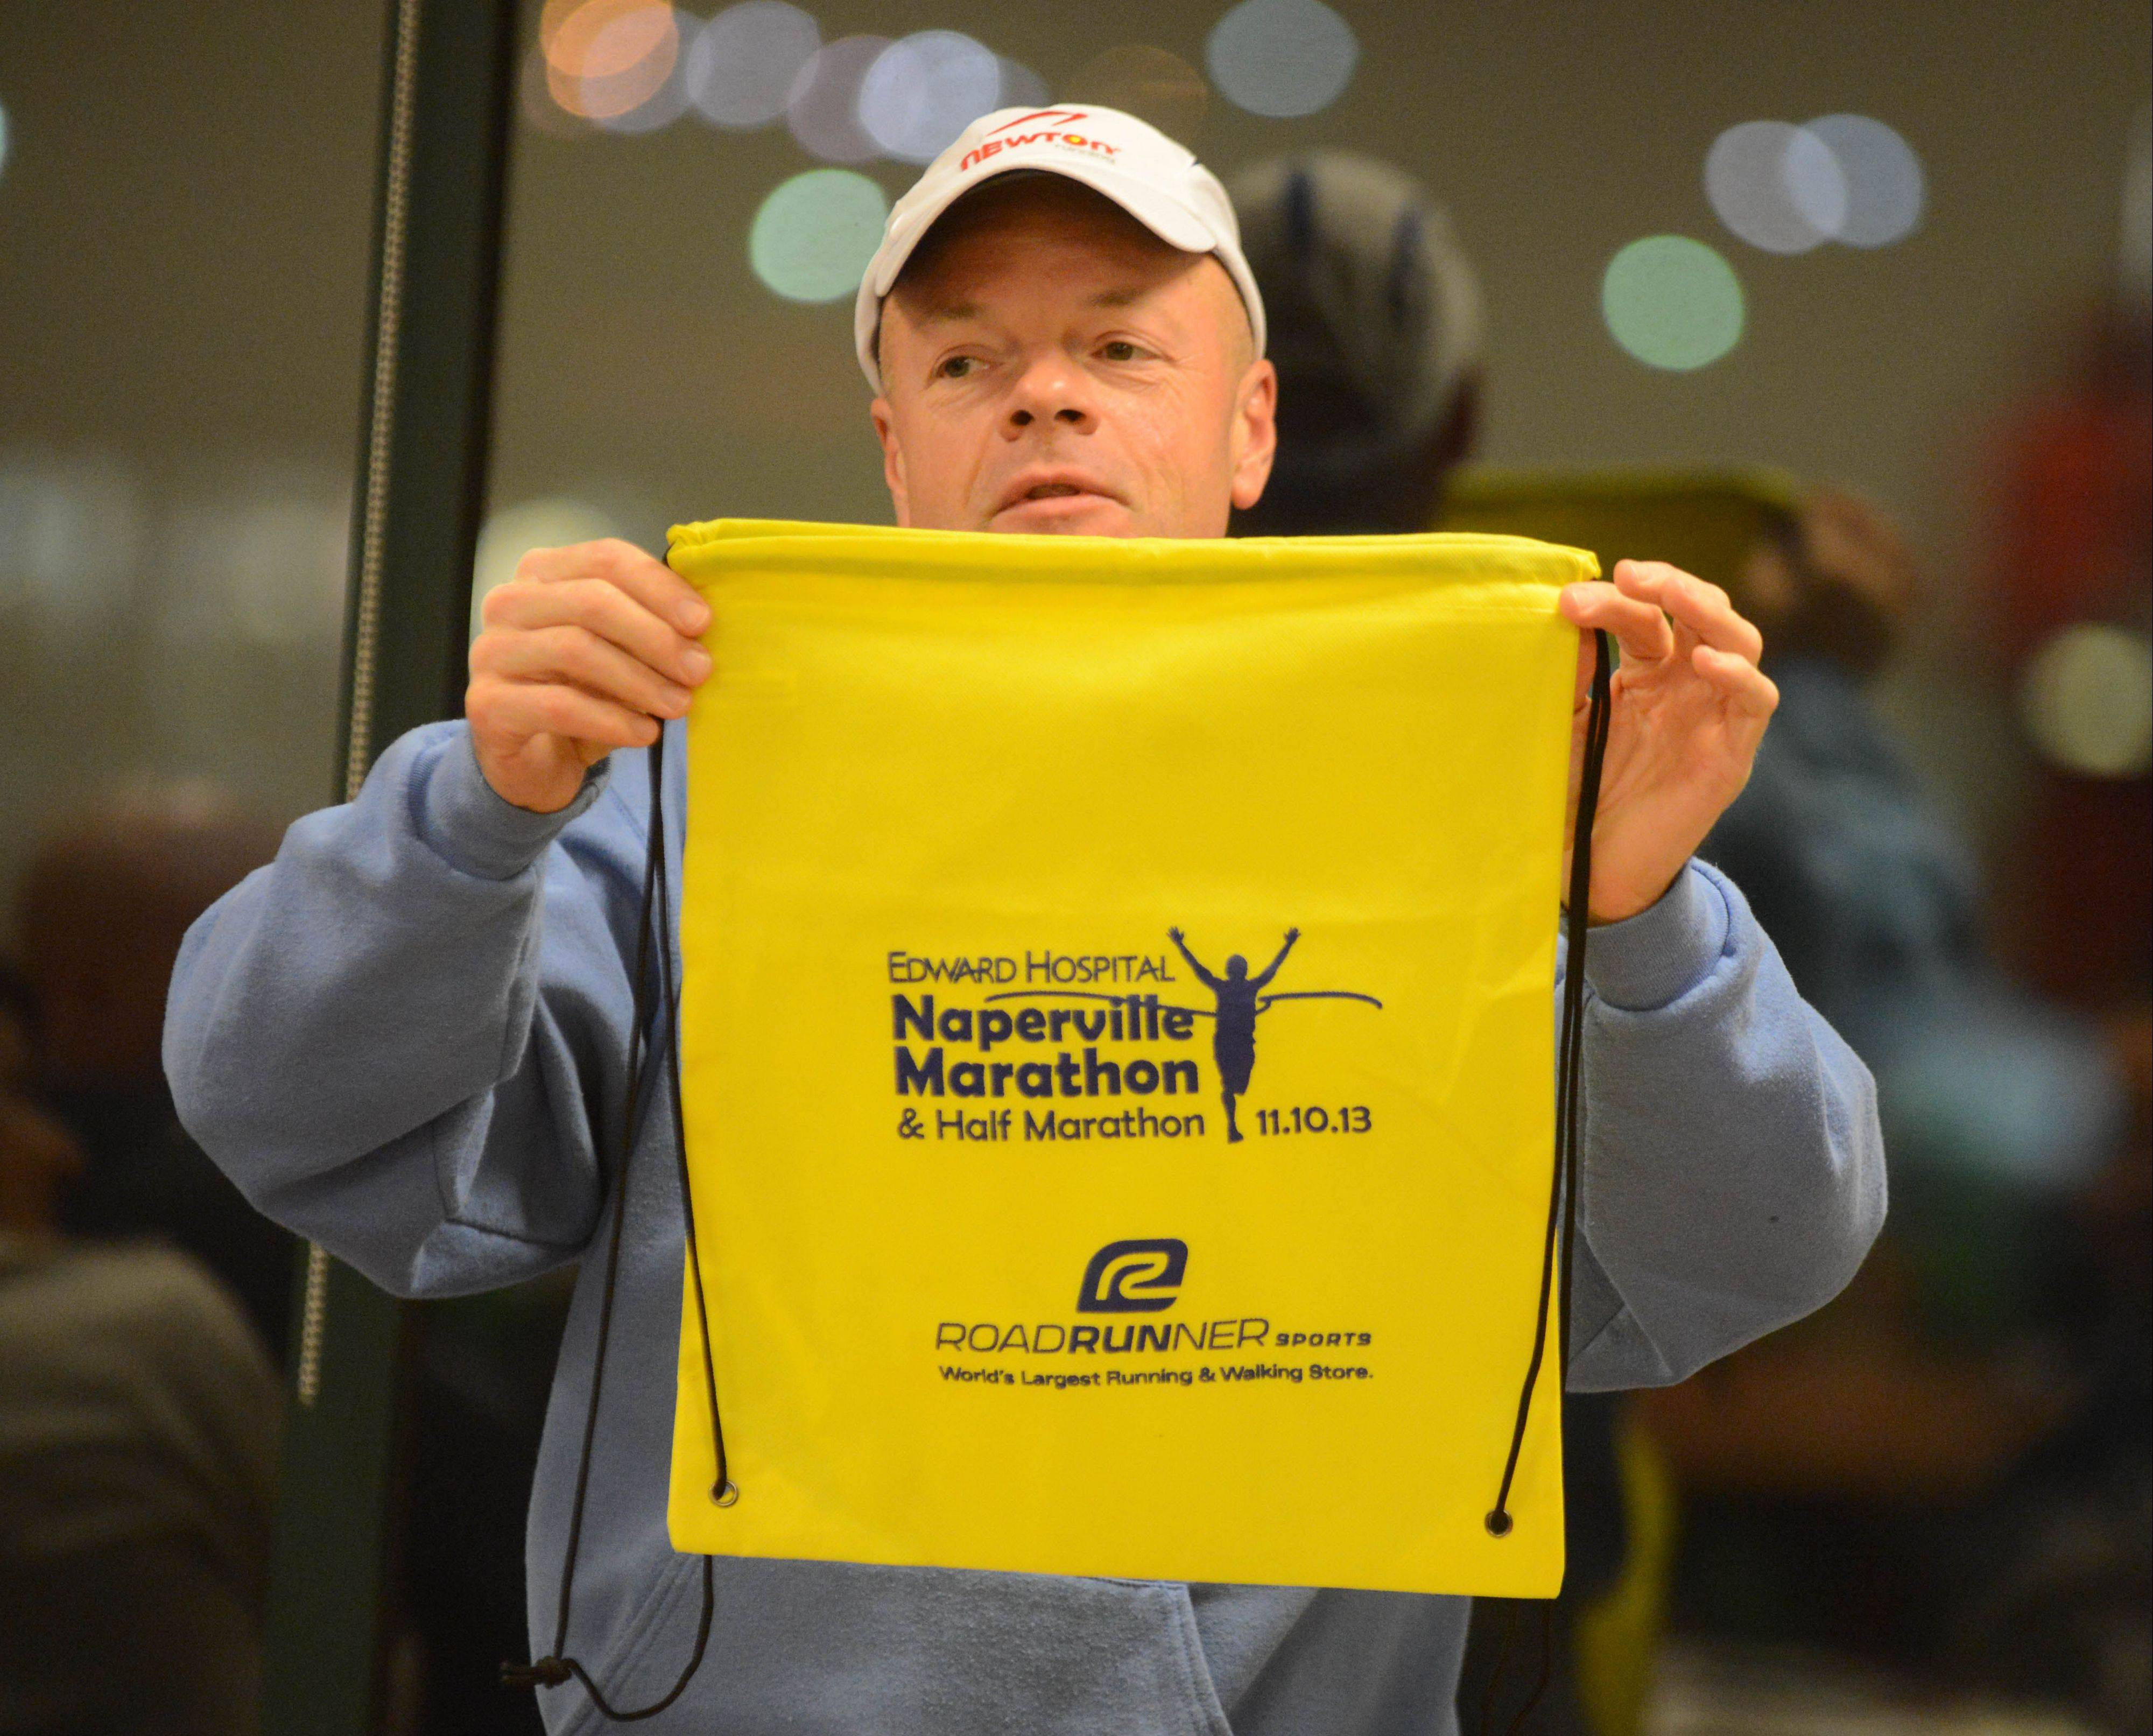 Tom Horvath displays the gear bag each registered runner will receive during an October meeting of volunteers for the Edward Hospital Marathon and Half Marathon.